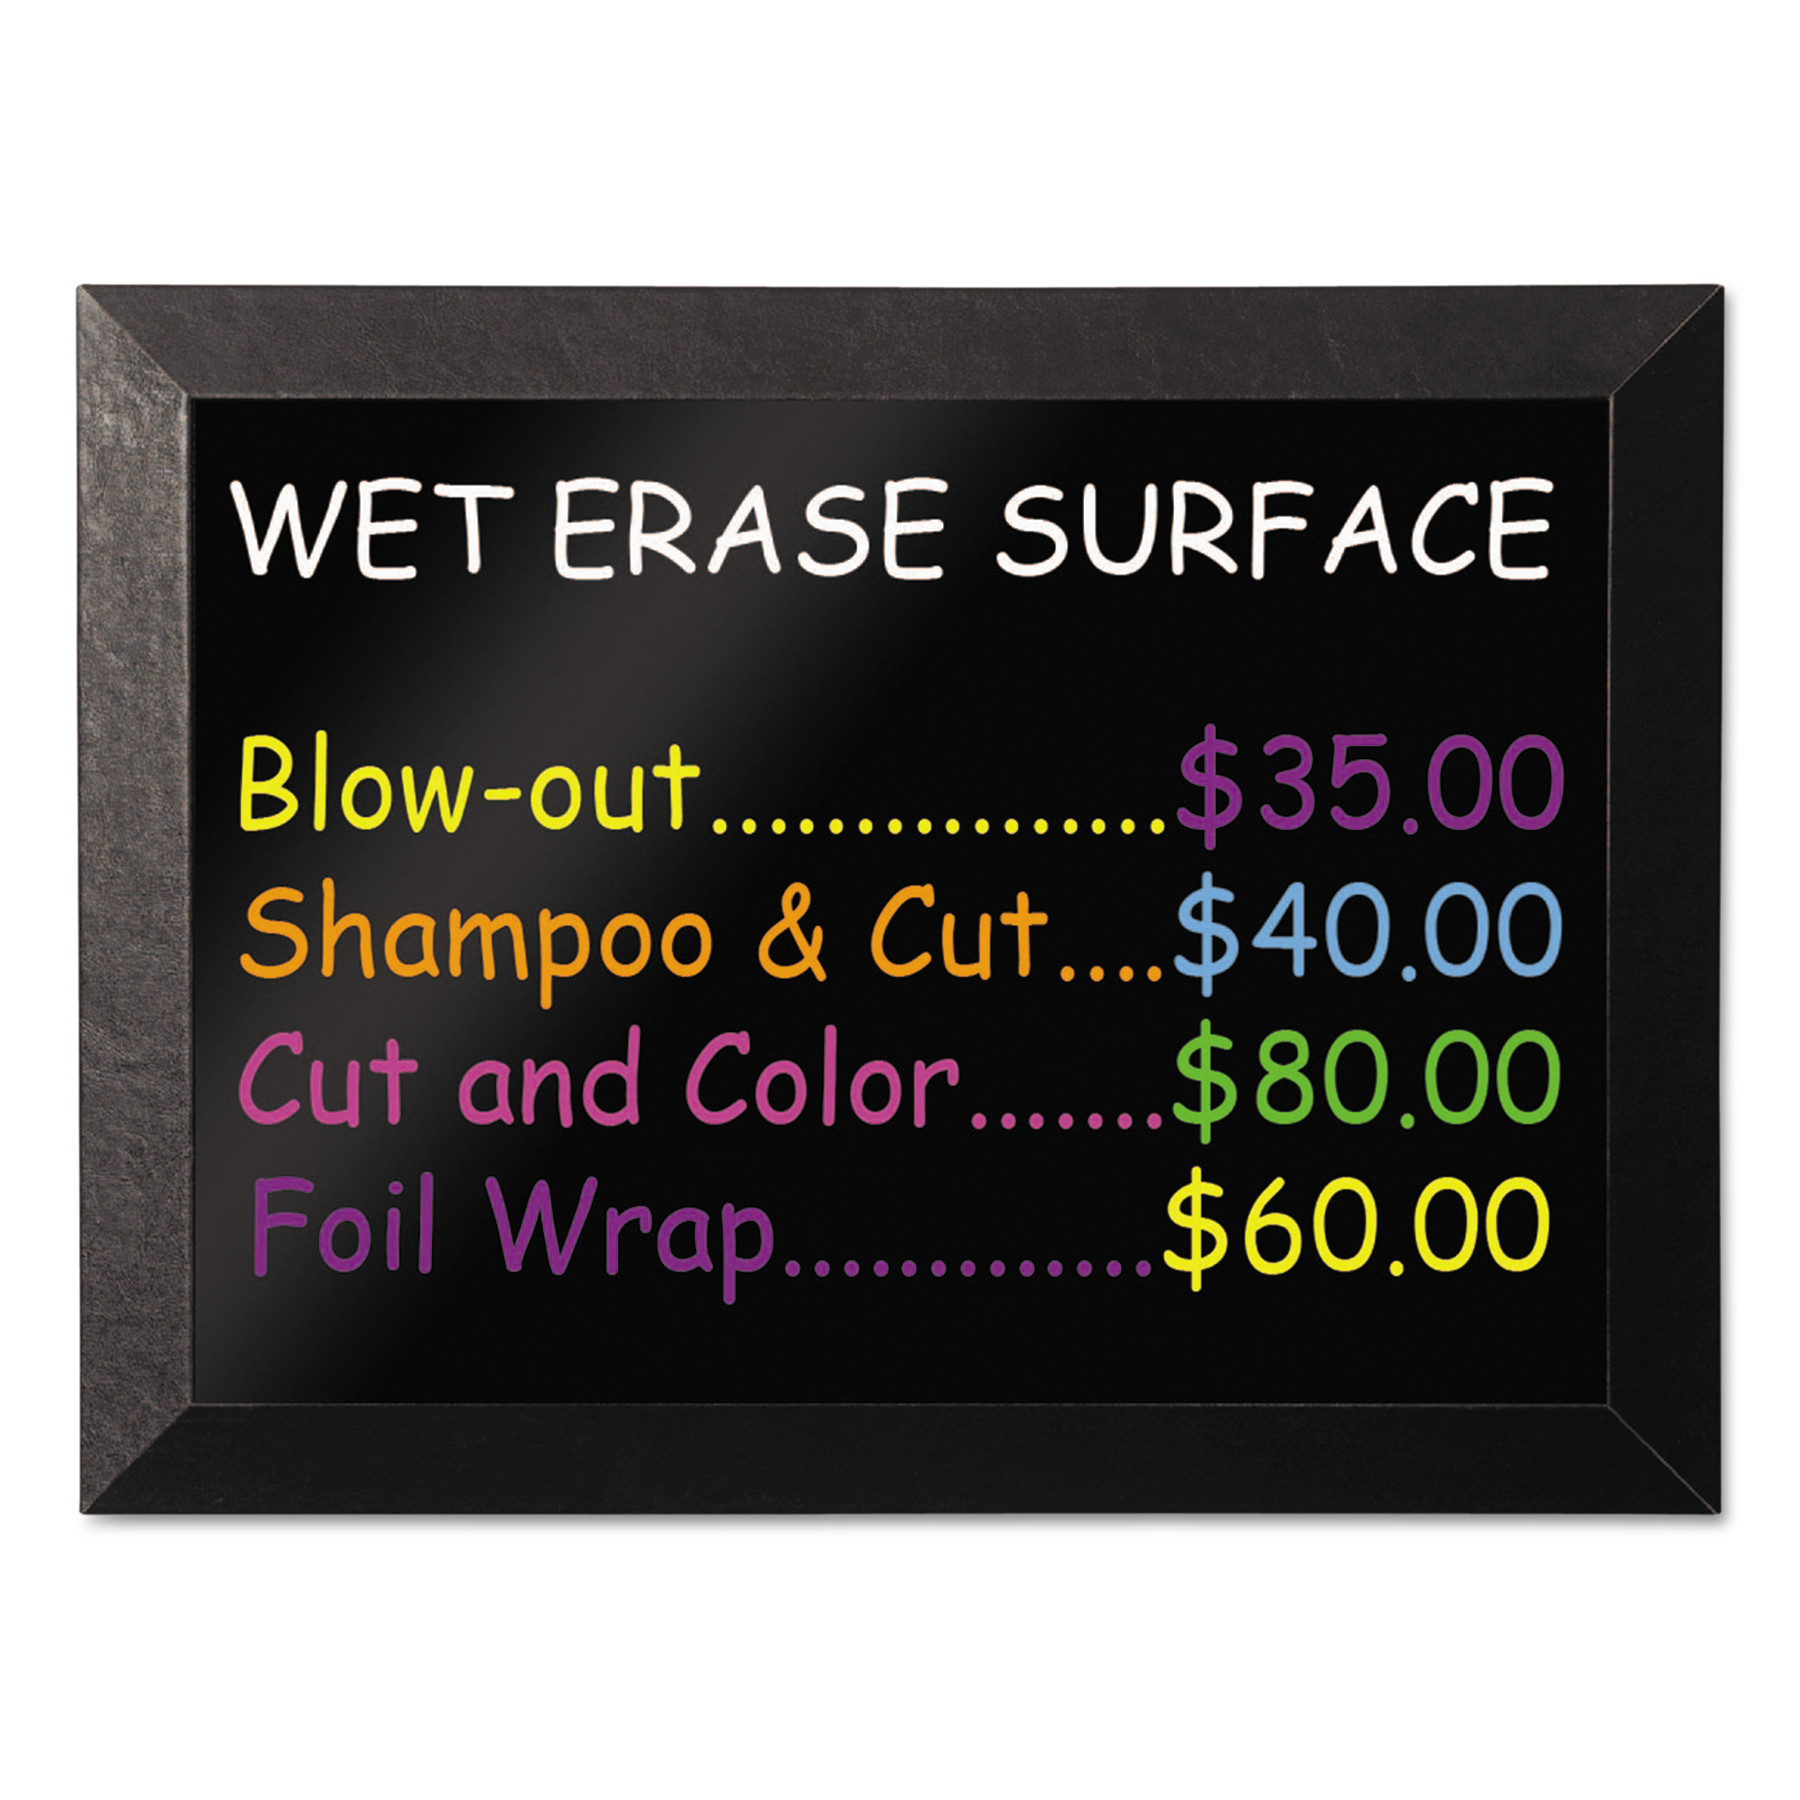 Kamashi Wet-Erase Board, 36 x 24, Black Frame